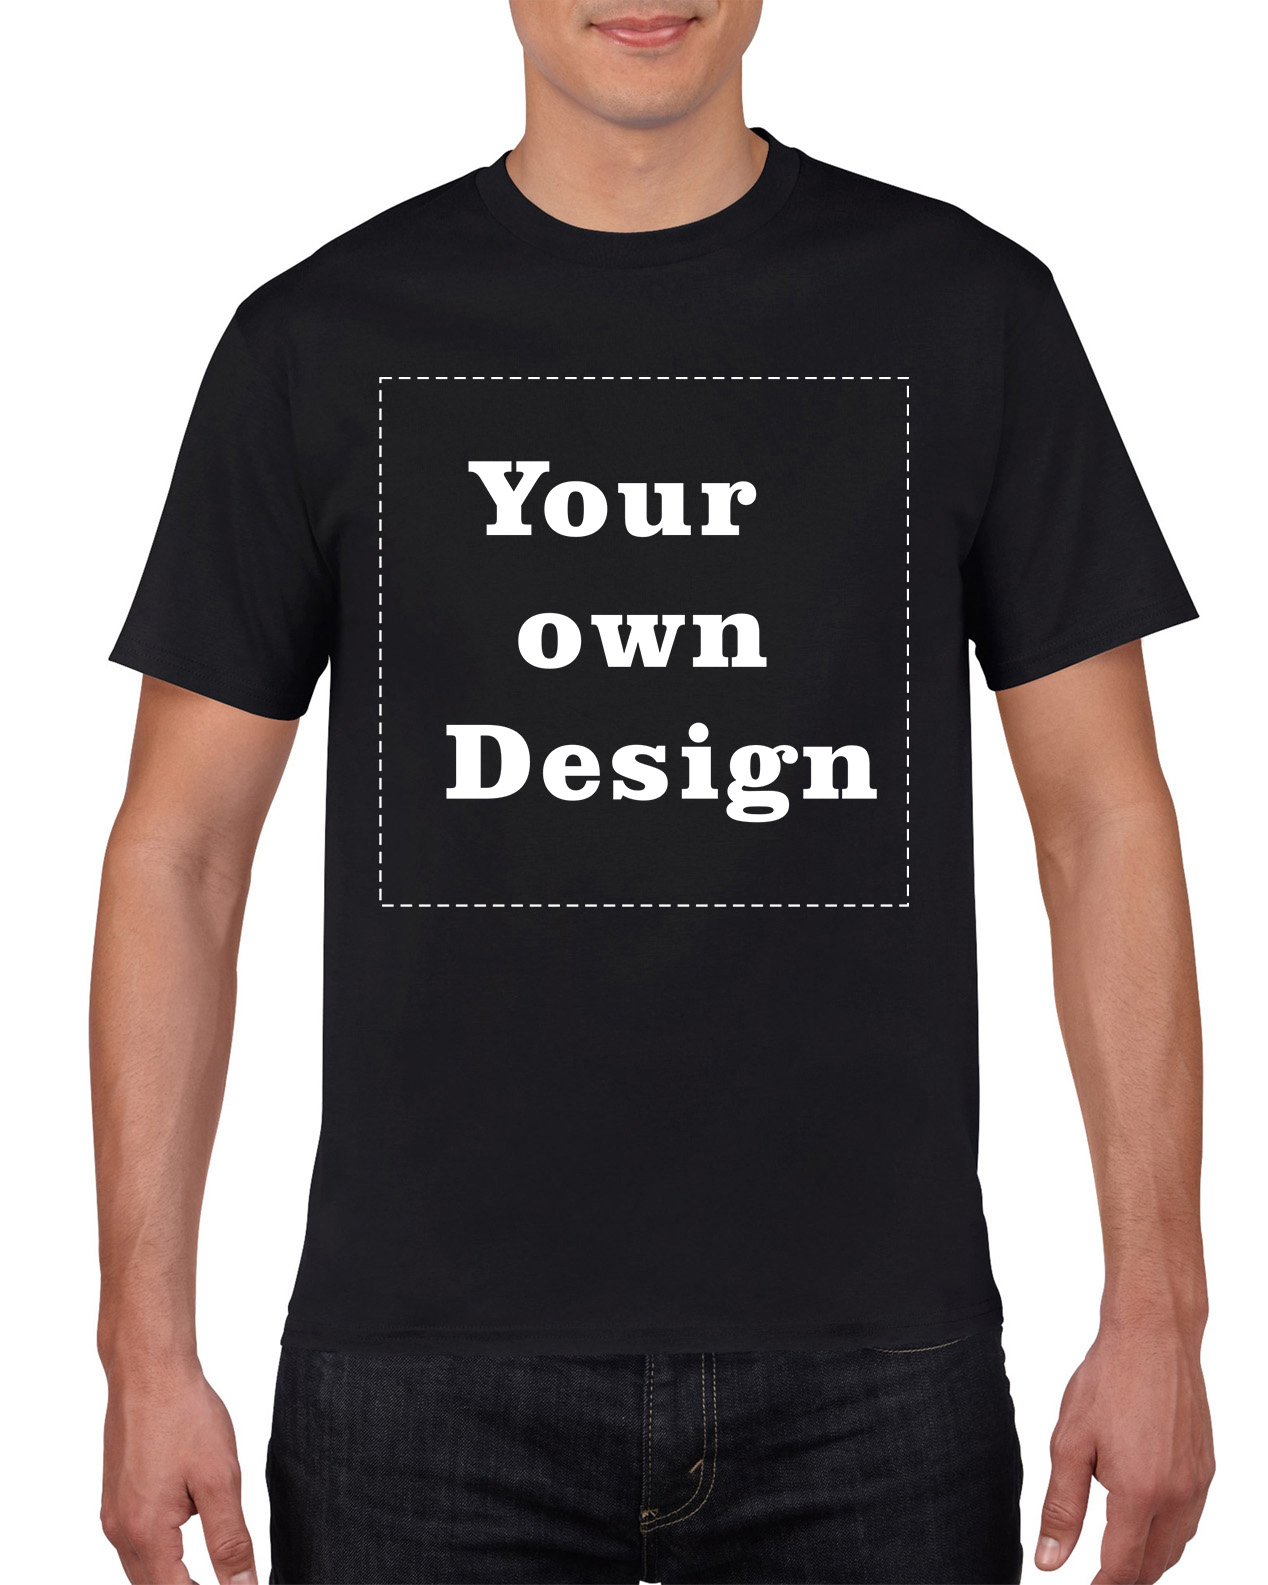 Design your own t-shirt for dogs - Customized Black Men S T Shirt Print Your Own Design High Quality Fast Ship China